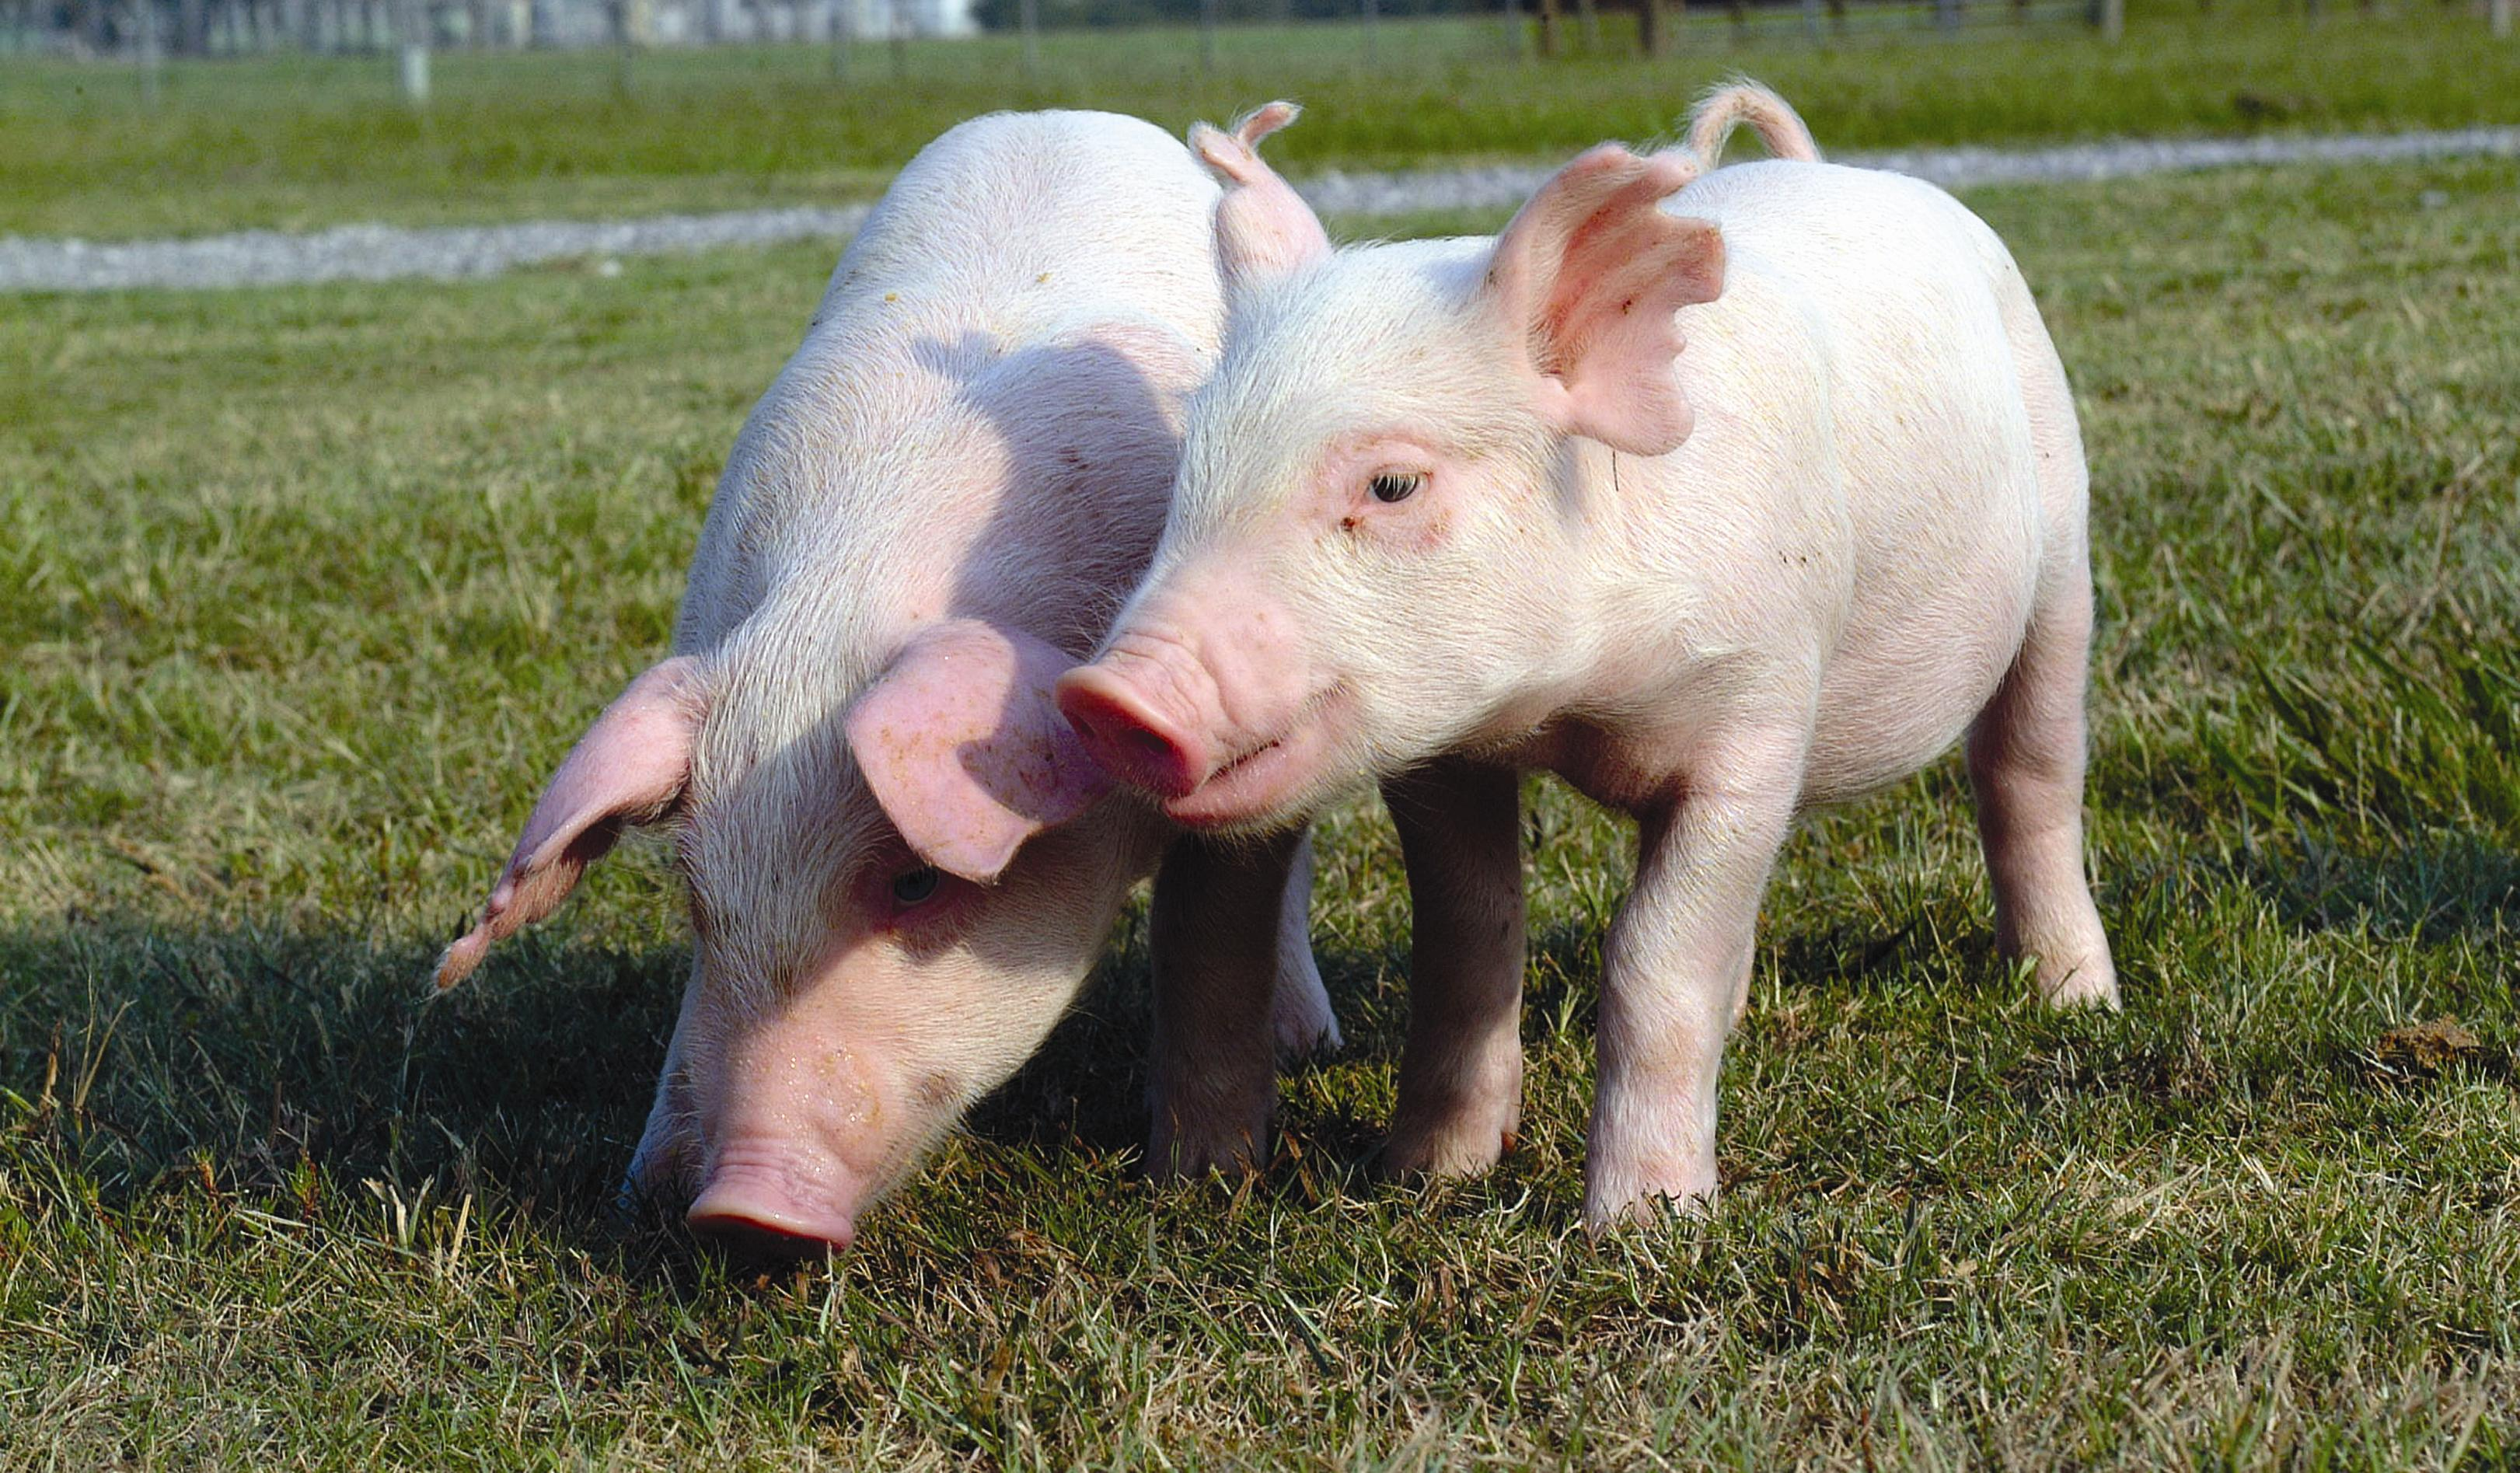 Adding Phytase Proves Positive for Poultry Swine Diet